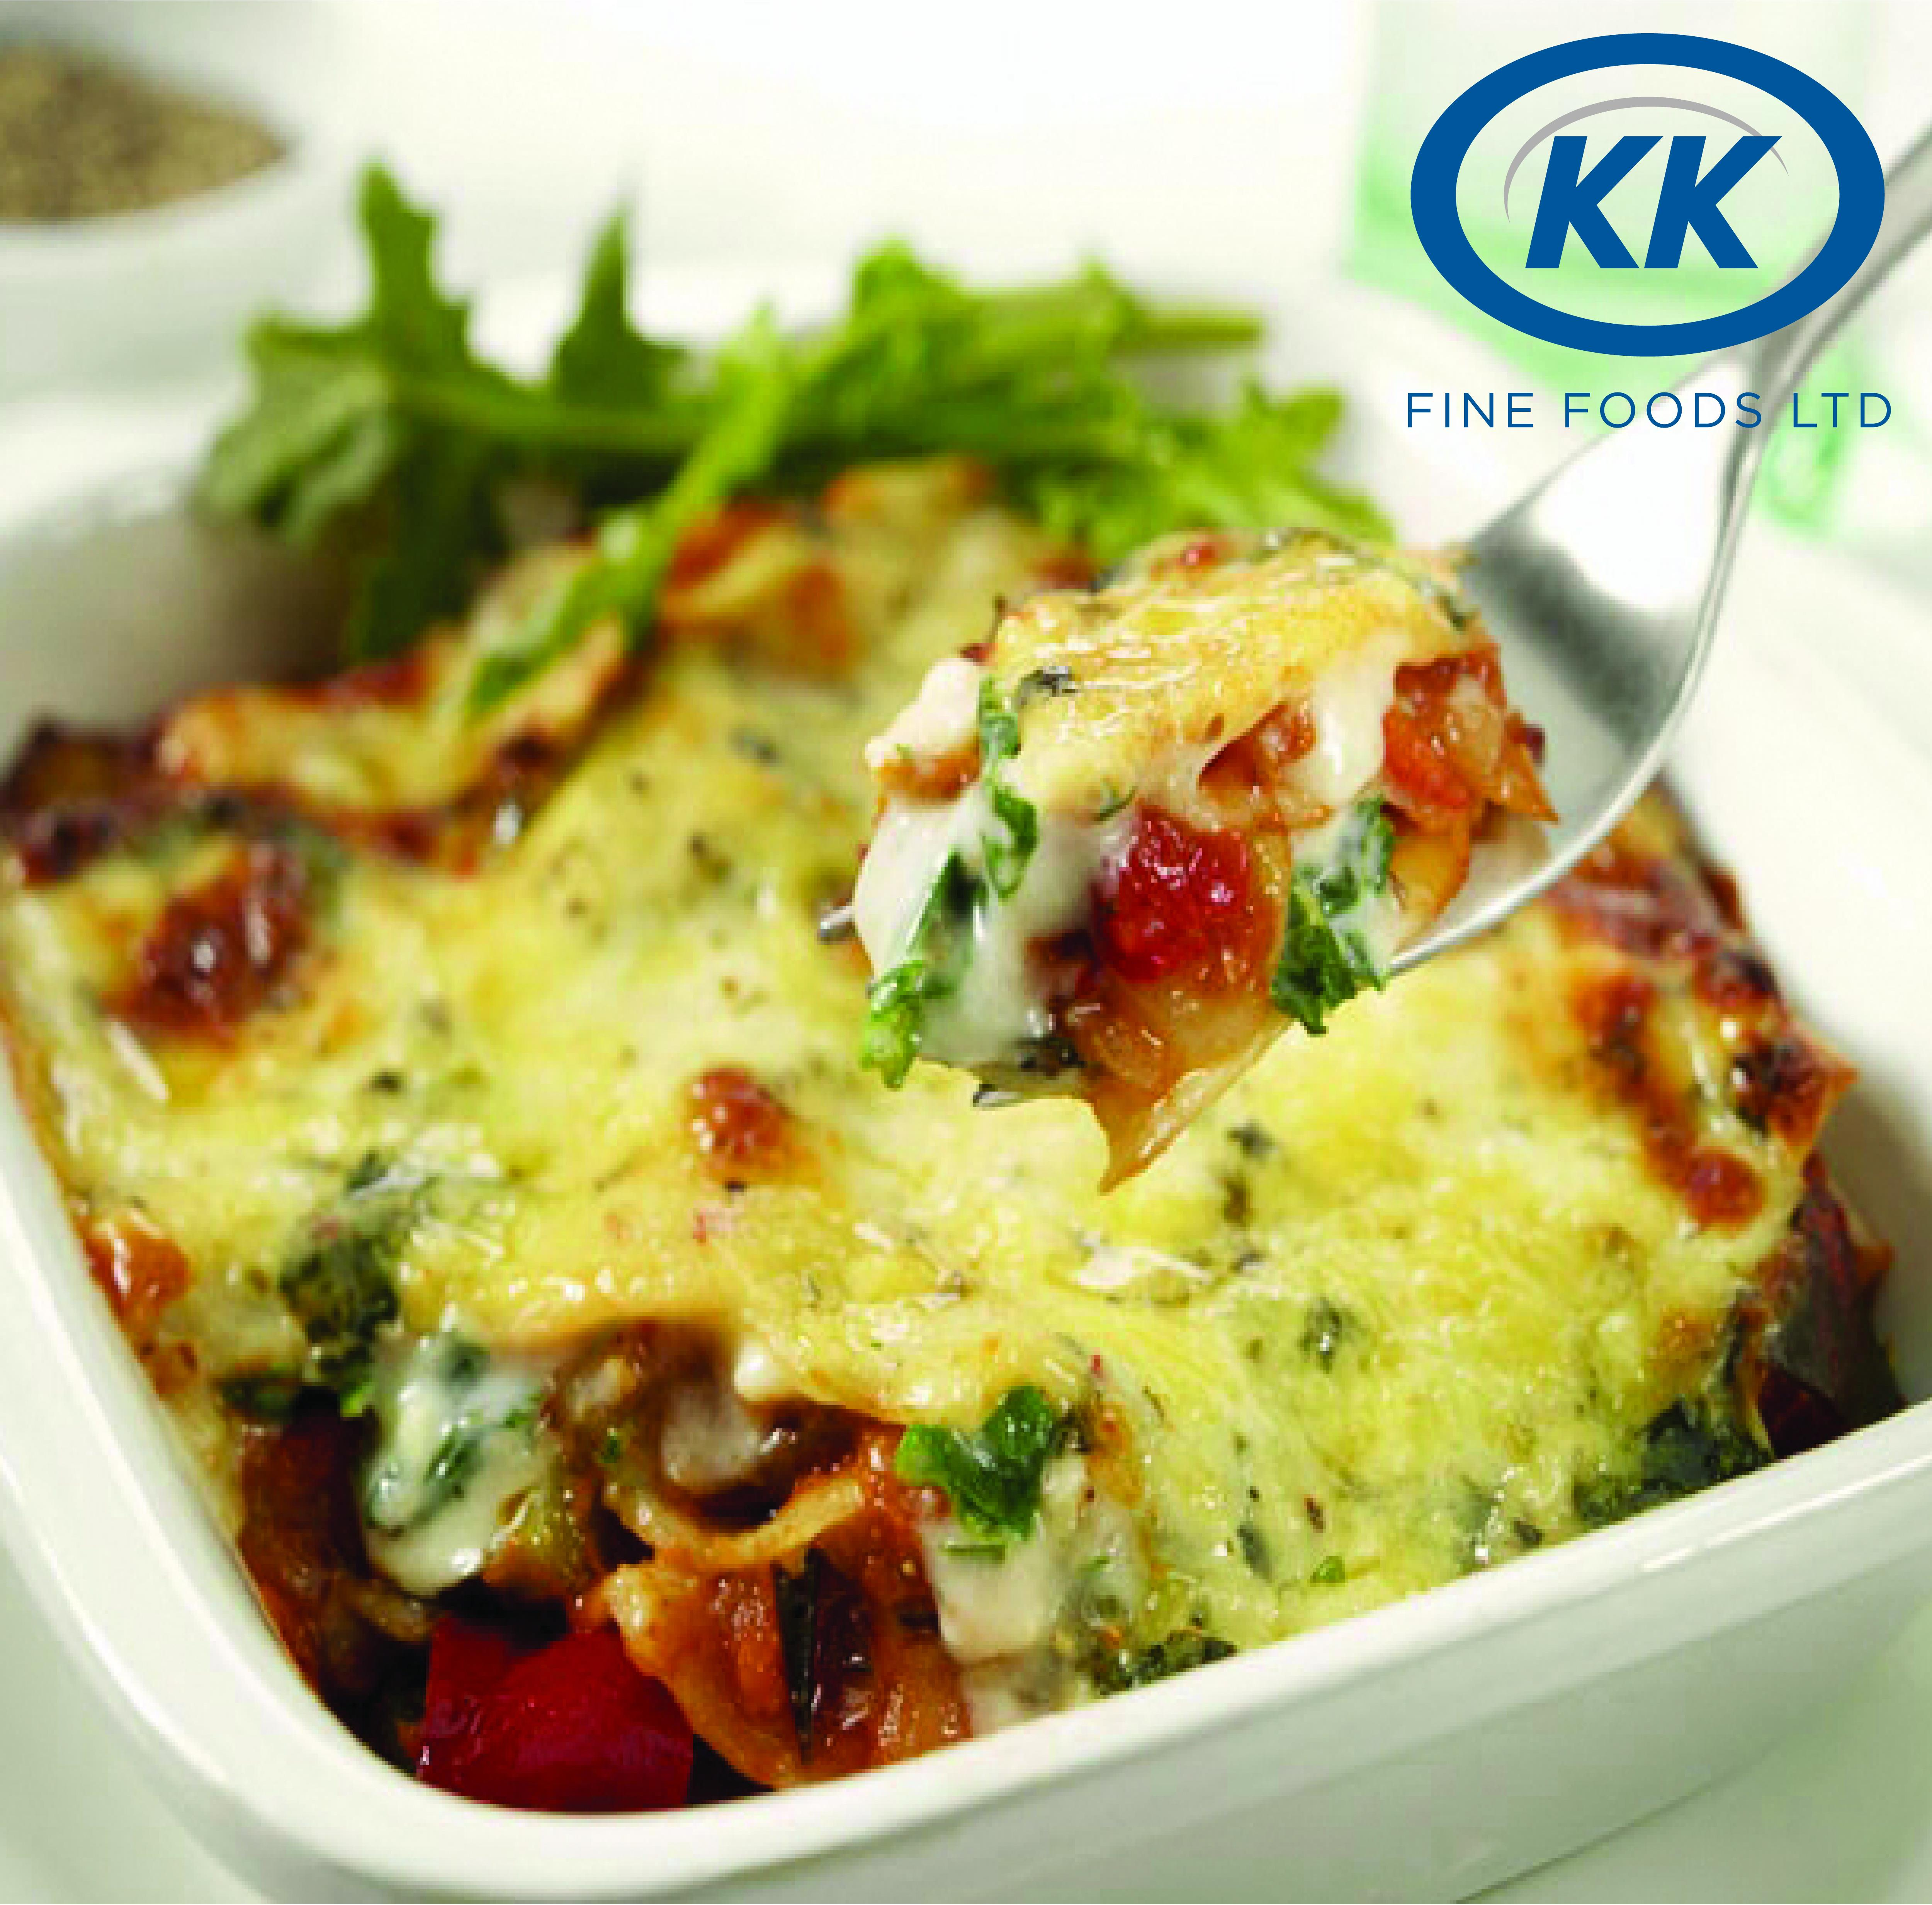 K.K Fine Foods Vegetable Lasagne 12 x 350g